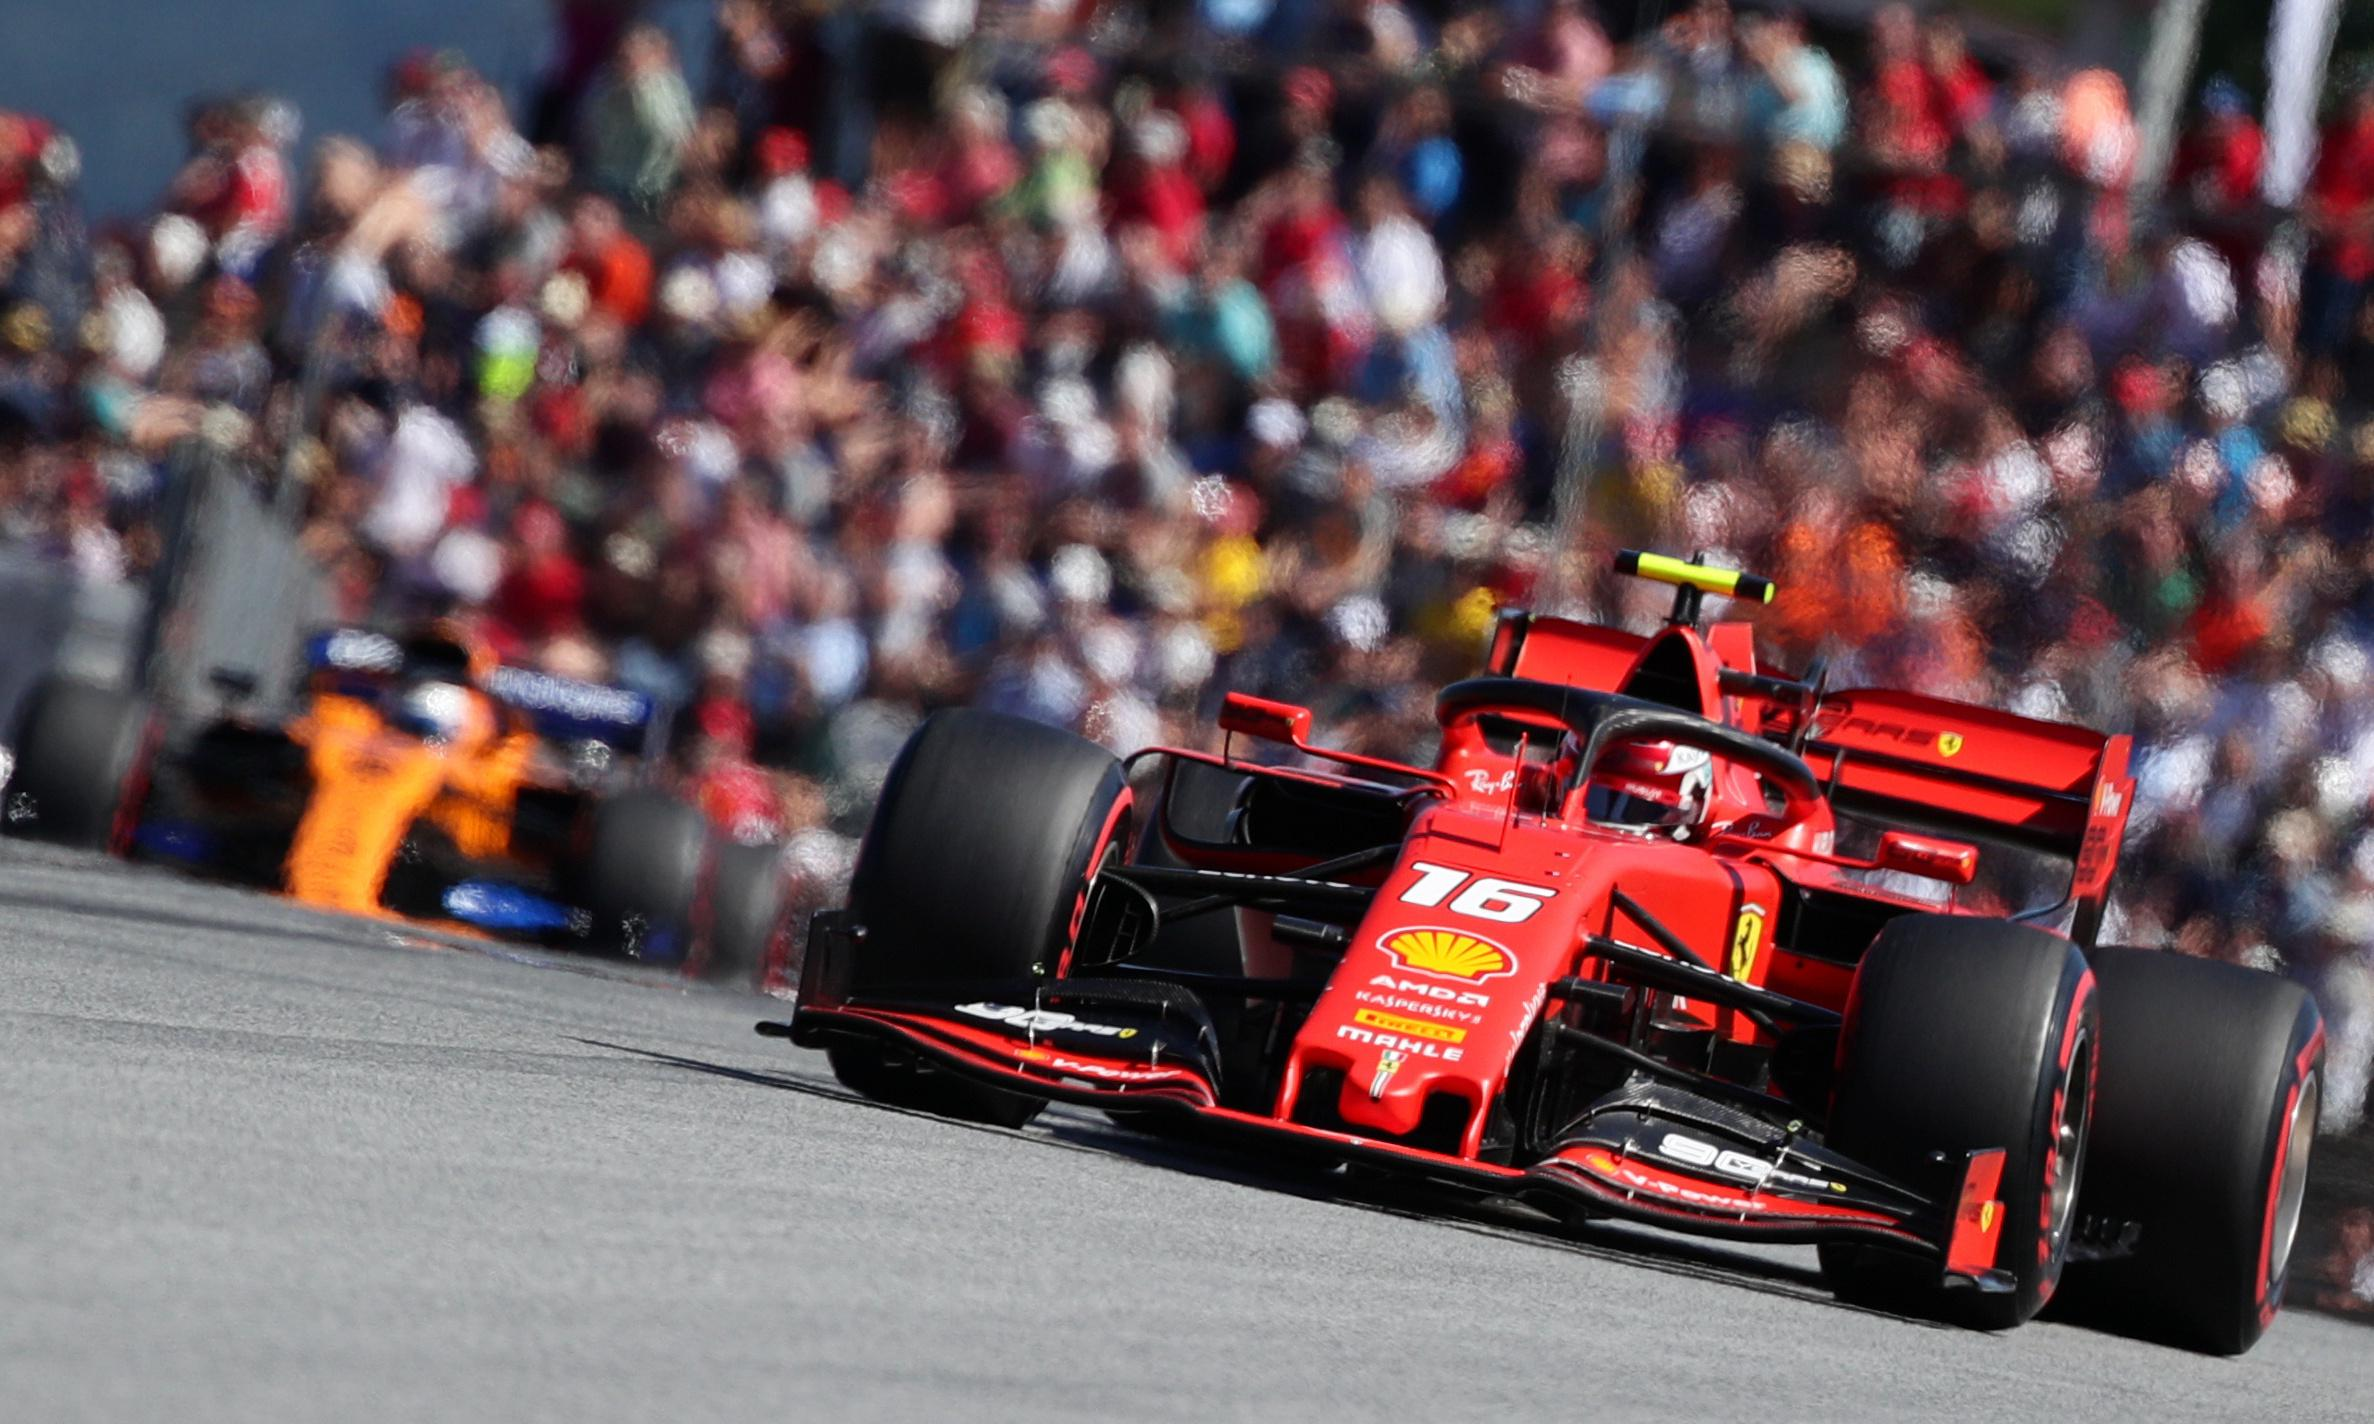 Charles Leclerc powers to Austria pole as Lewis Hamilton hit by grid penalty